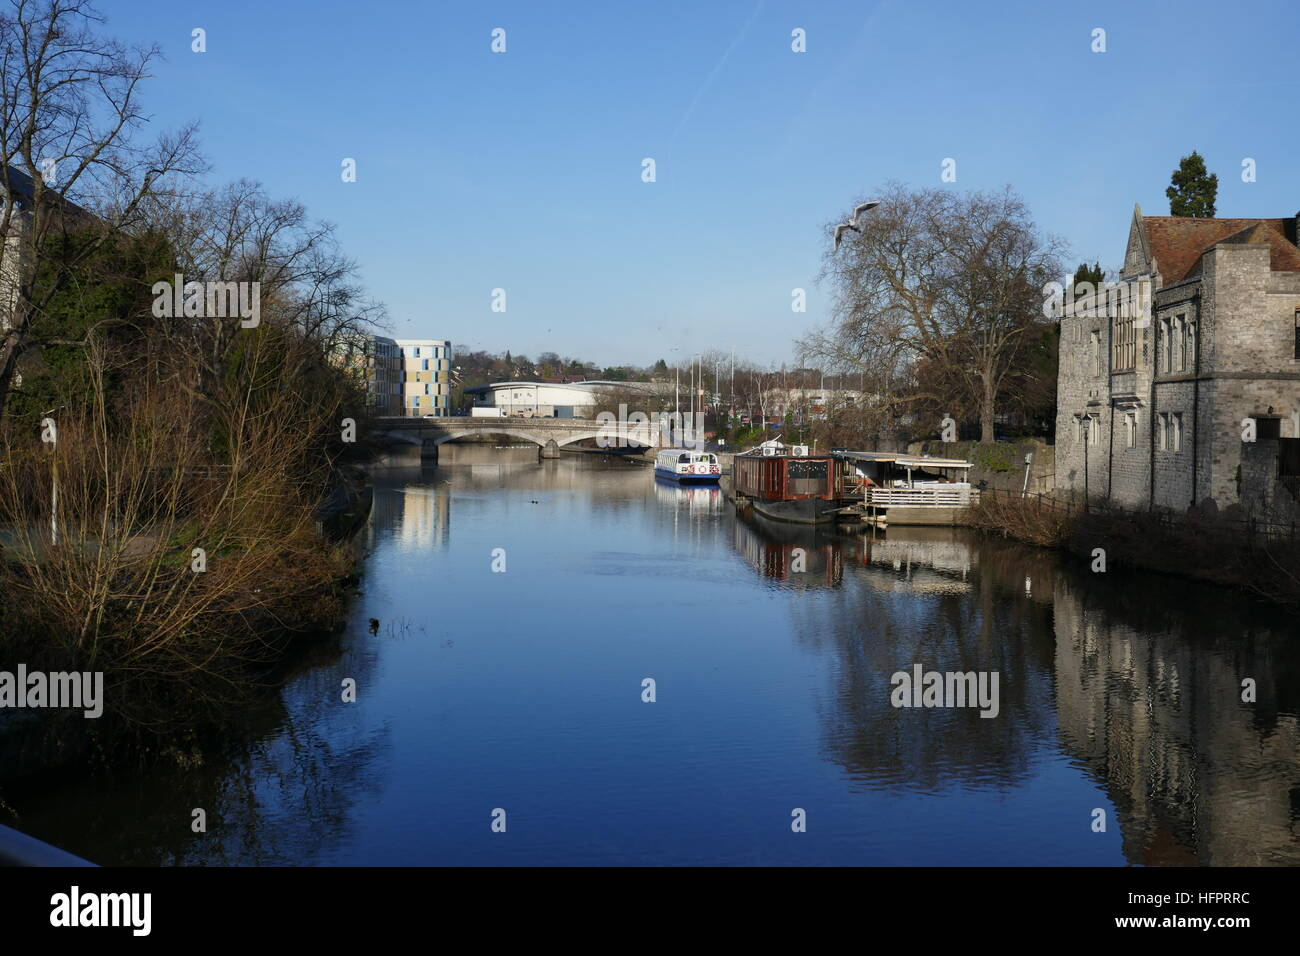 River Medway, Maidstone, Kent - Stock Image